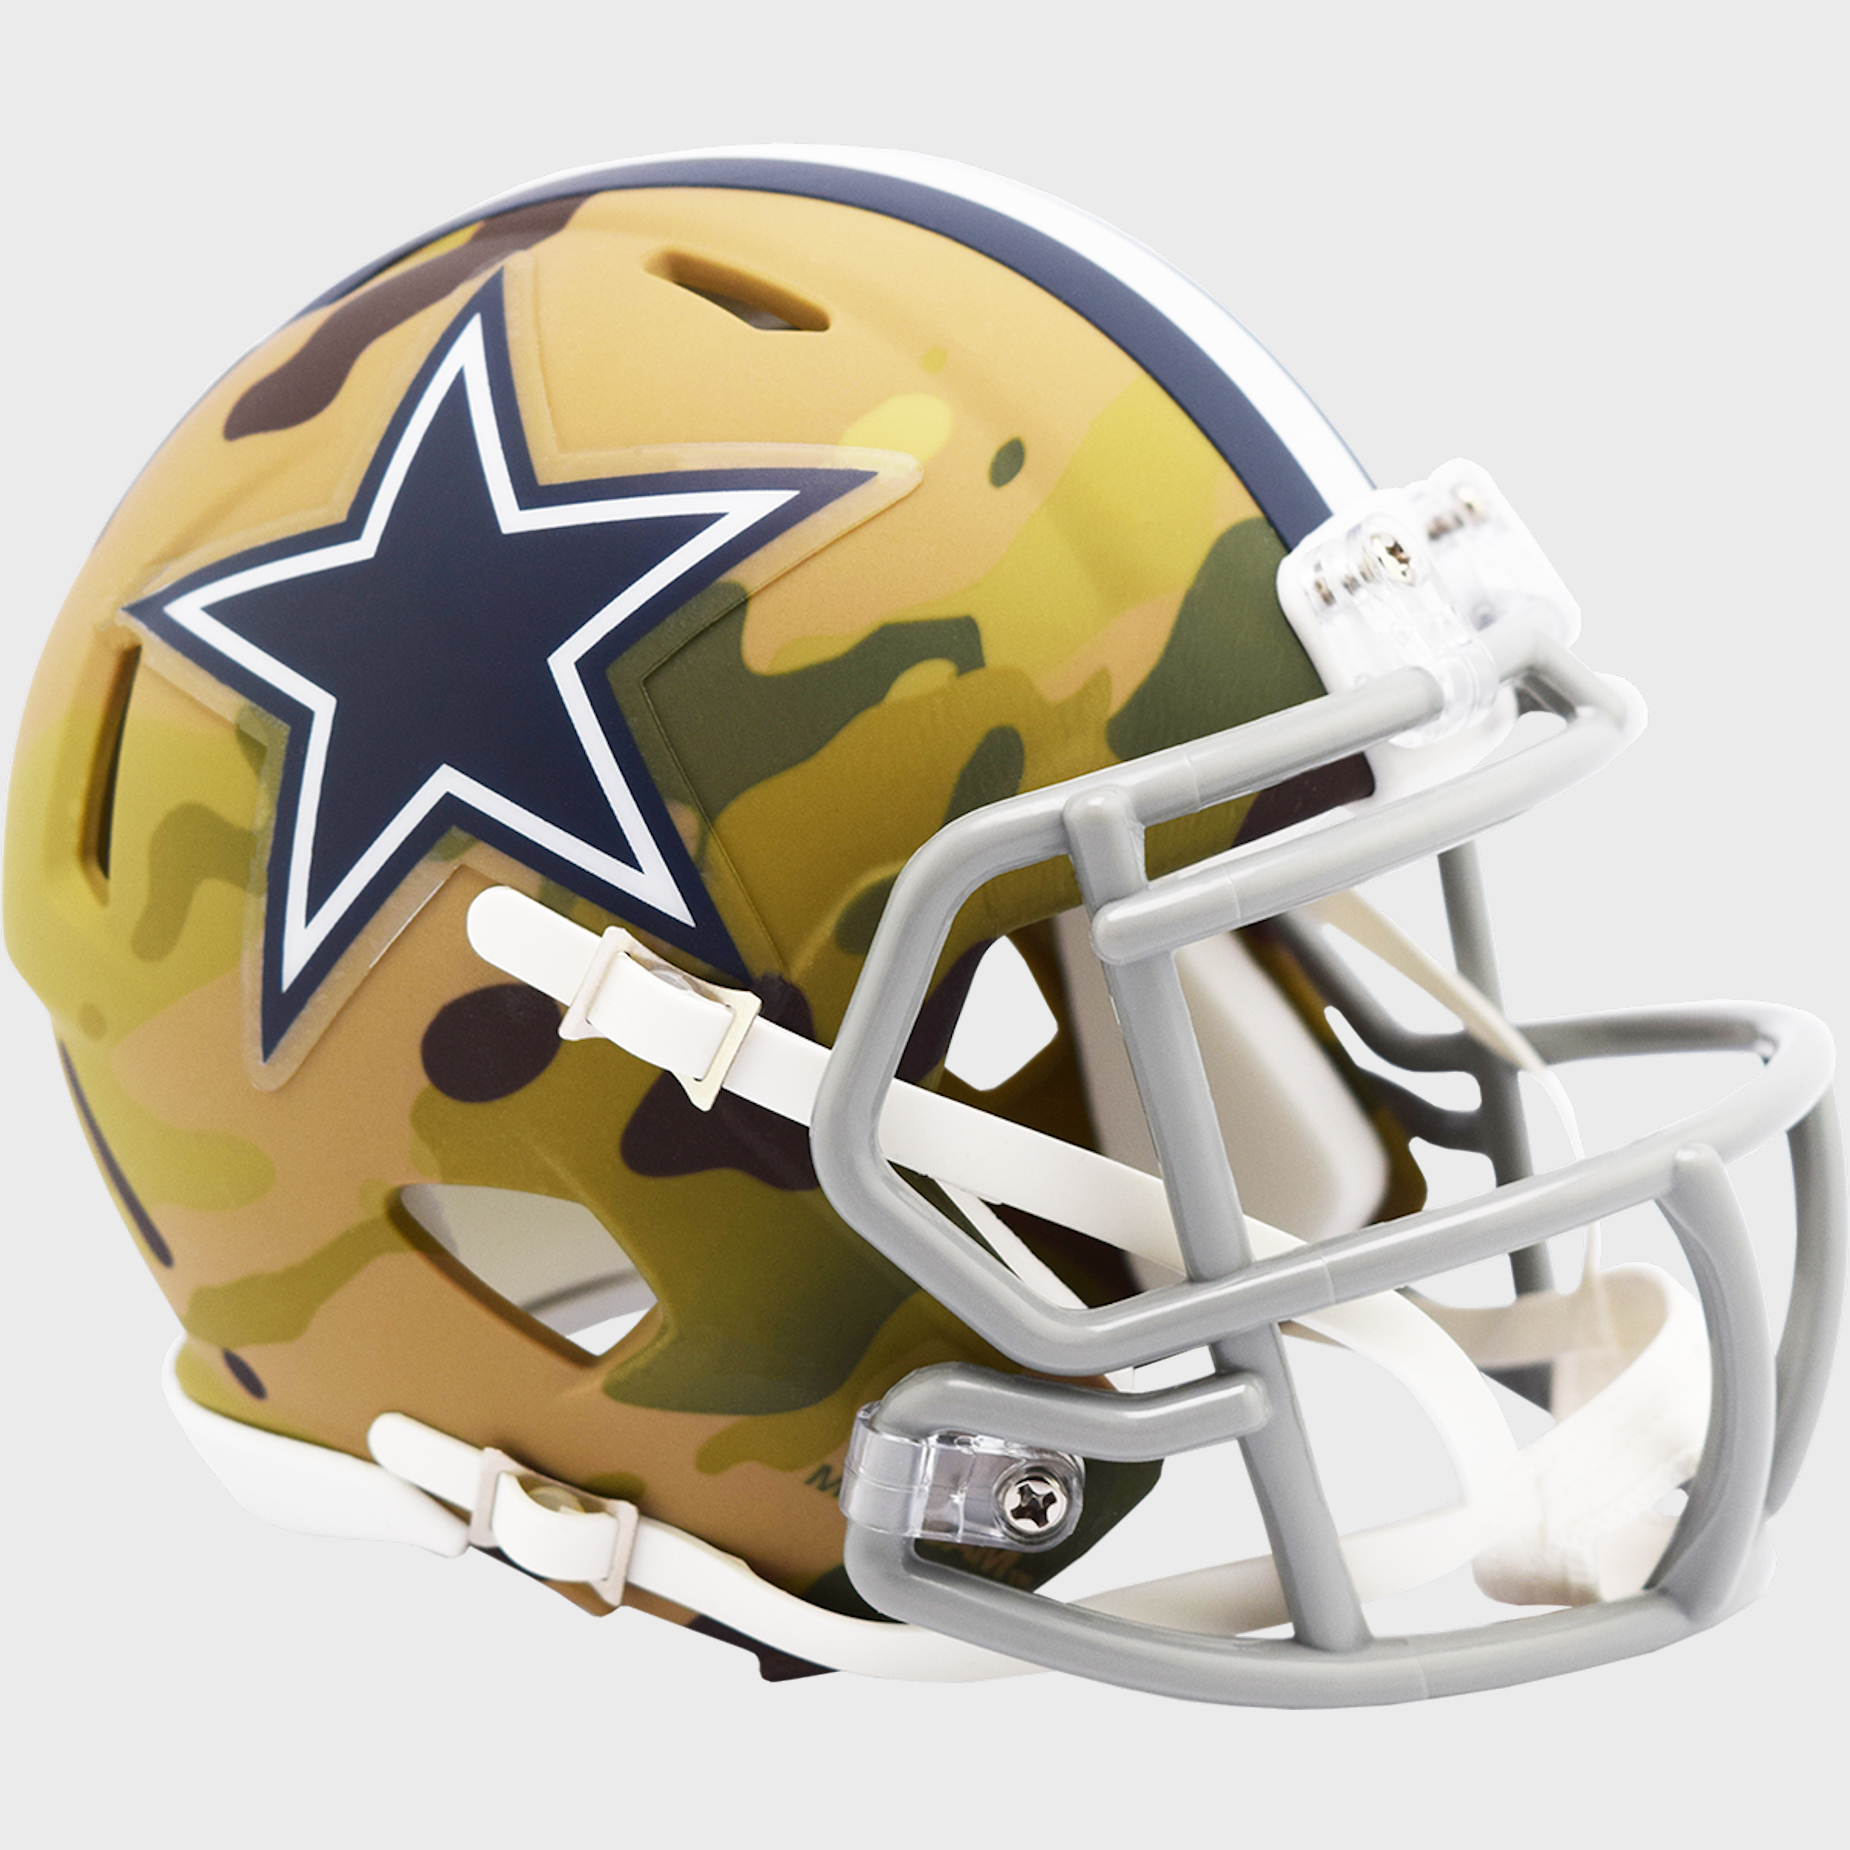 Dallas Cowboys NFL Mini Speed Football Helmet <B>CAMO</B>